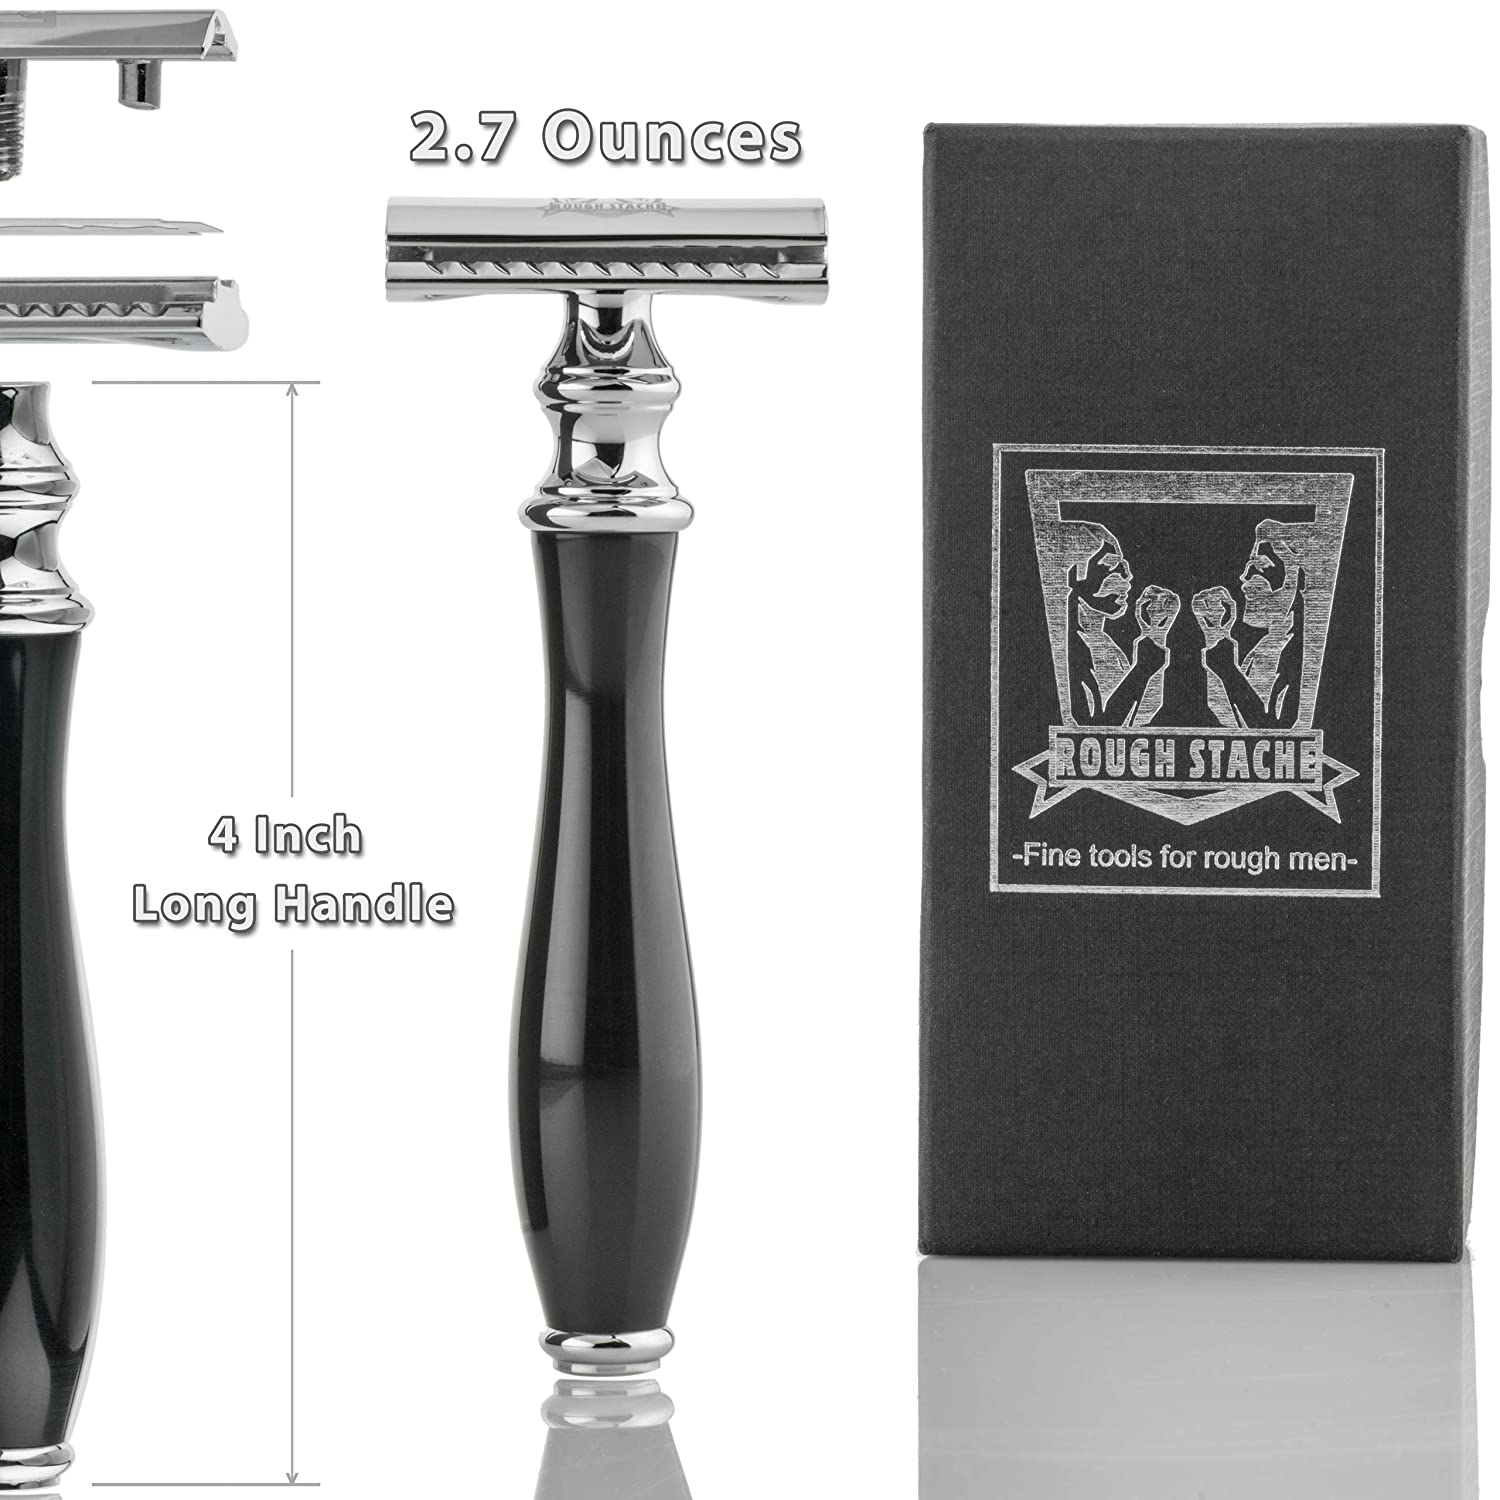 Ultra-Smooth Double Edge Safety Razor, Twist to Open Classic